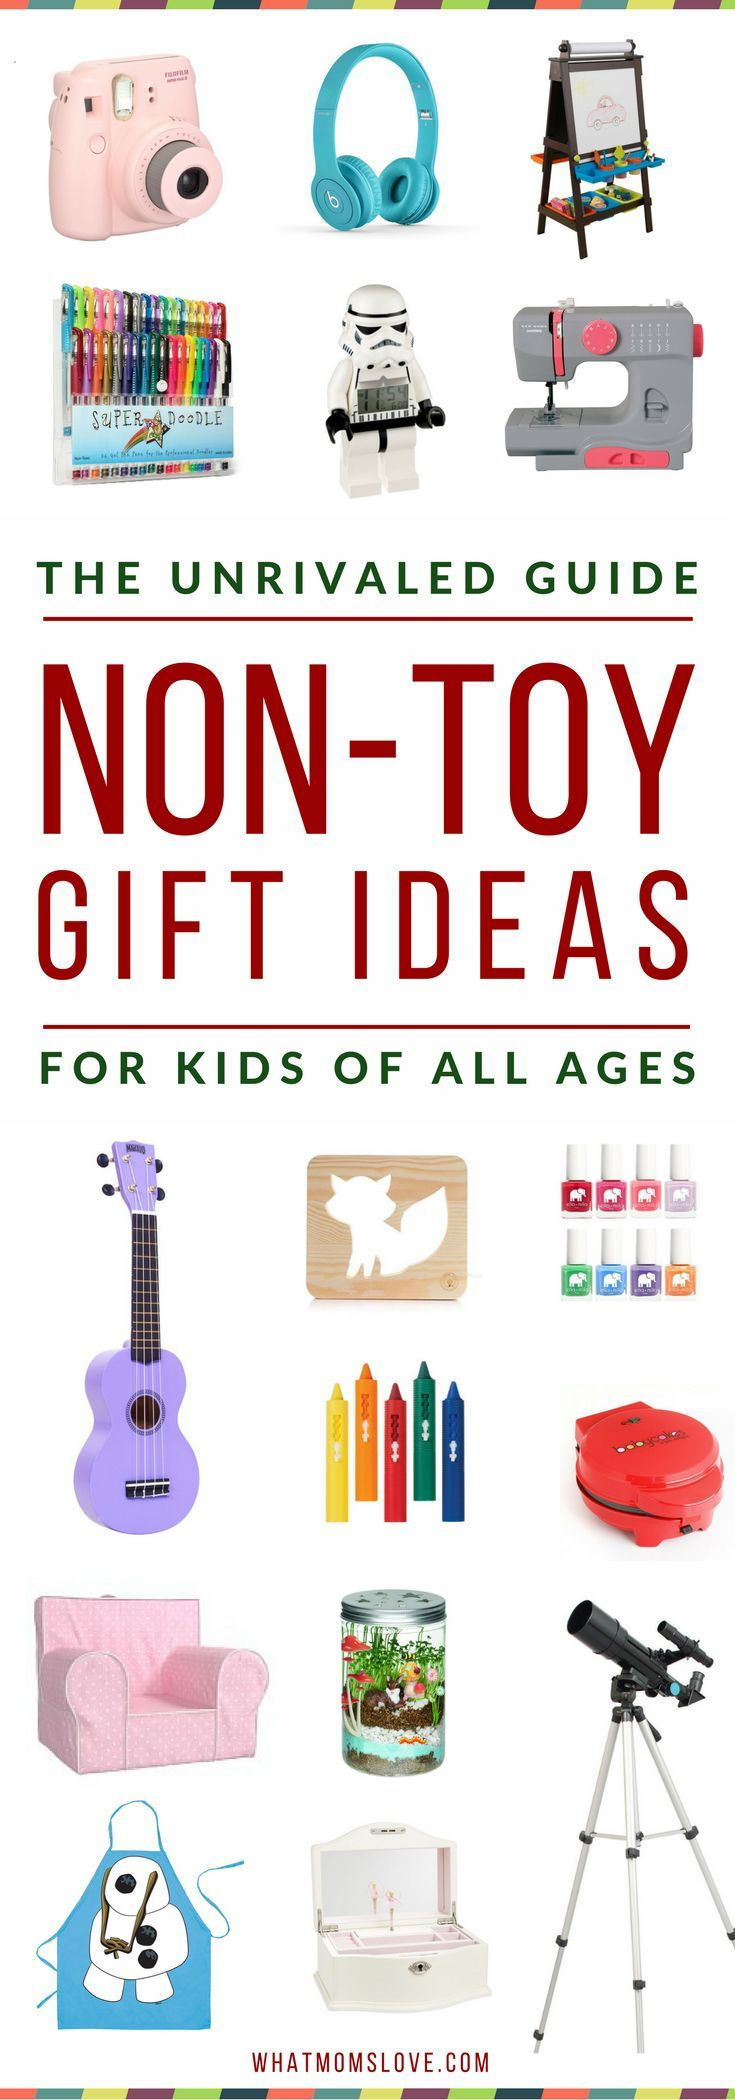 the unrivaled guide to non-toy gifts. 200+ presents for kids of all